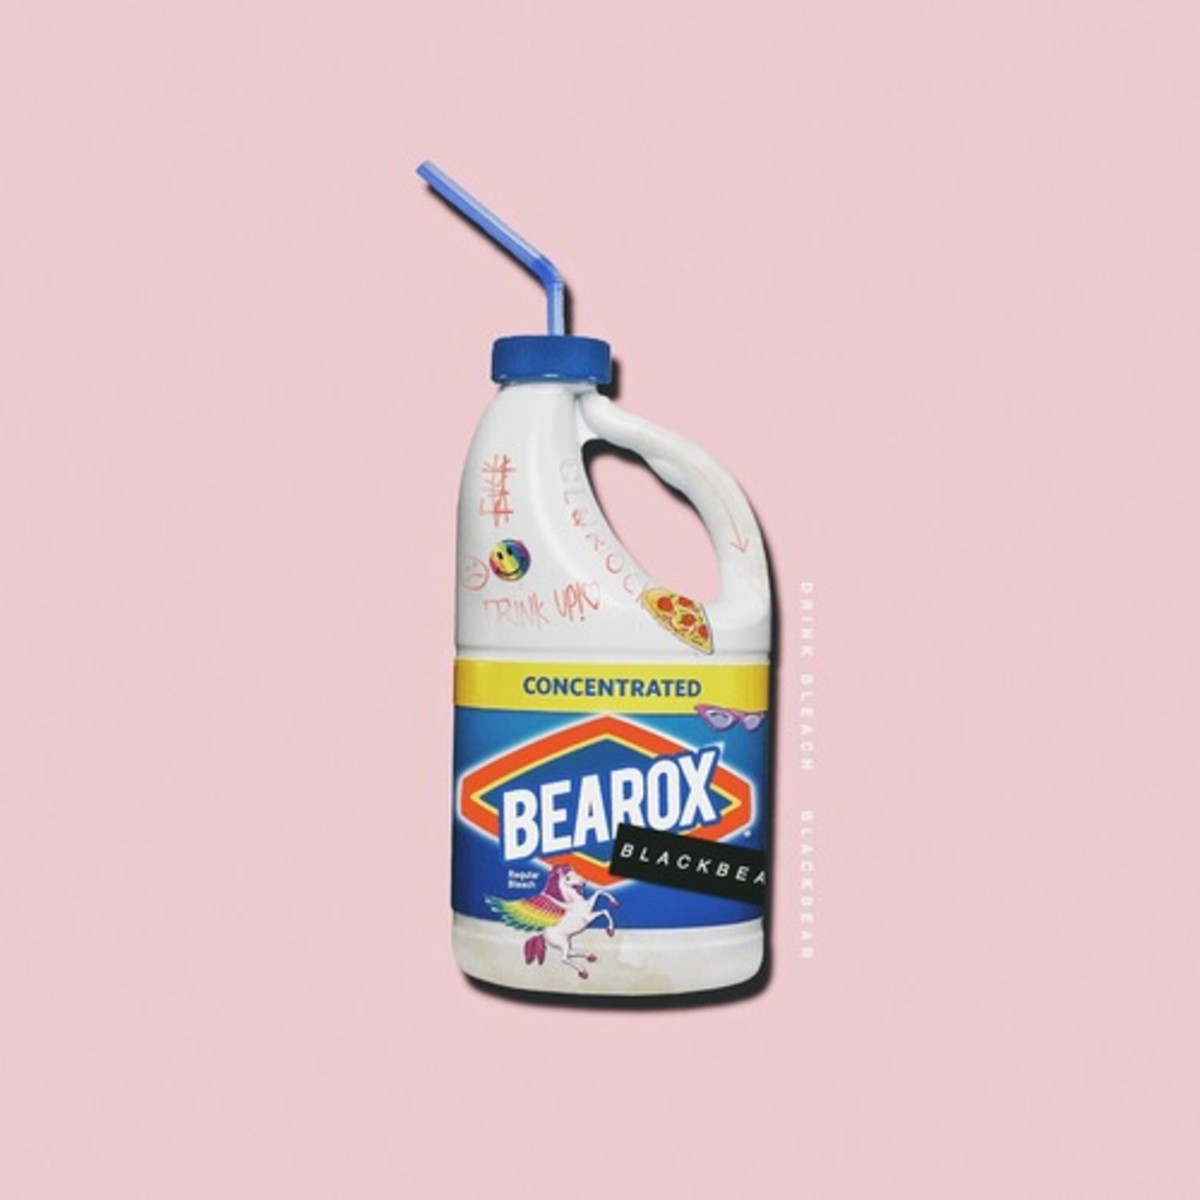 blackbear-drink-bleach-ep.jpg